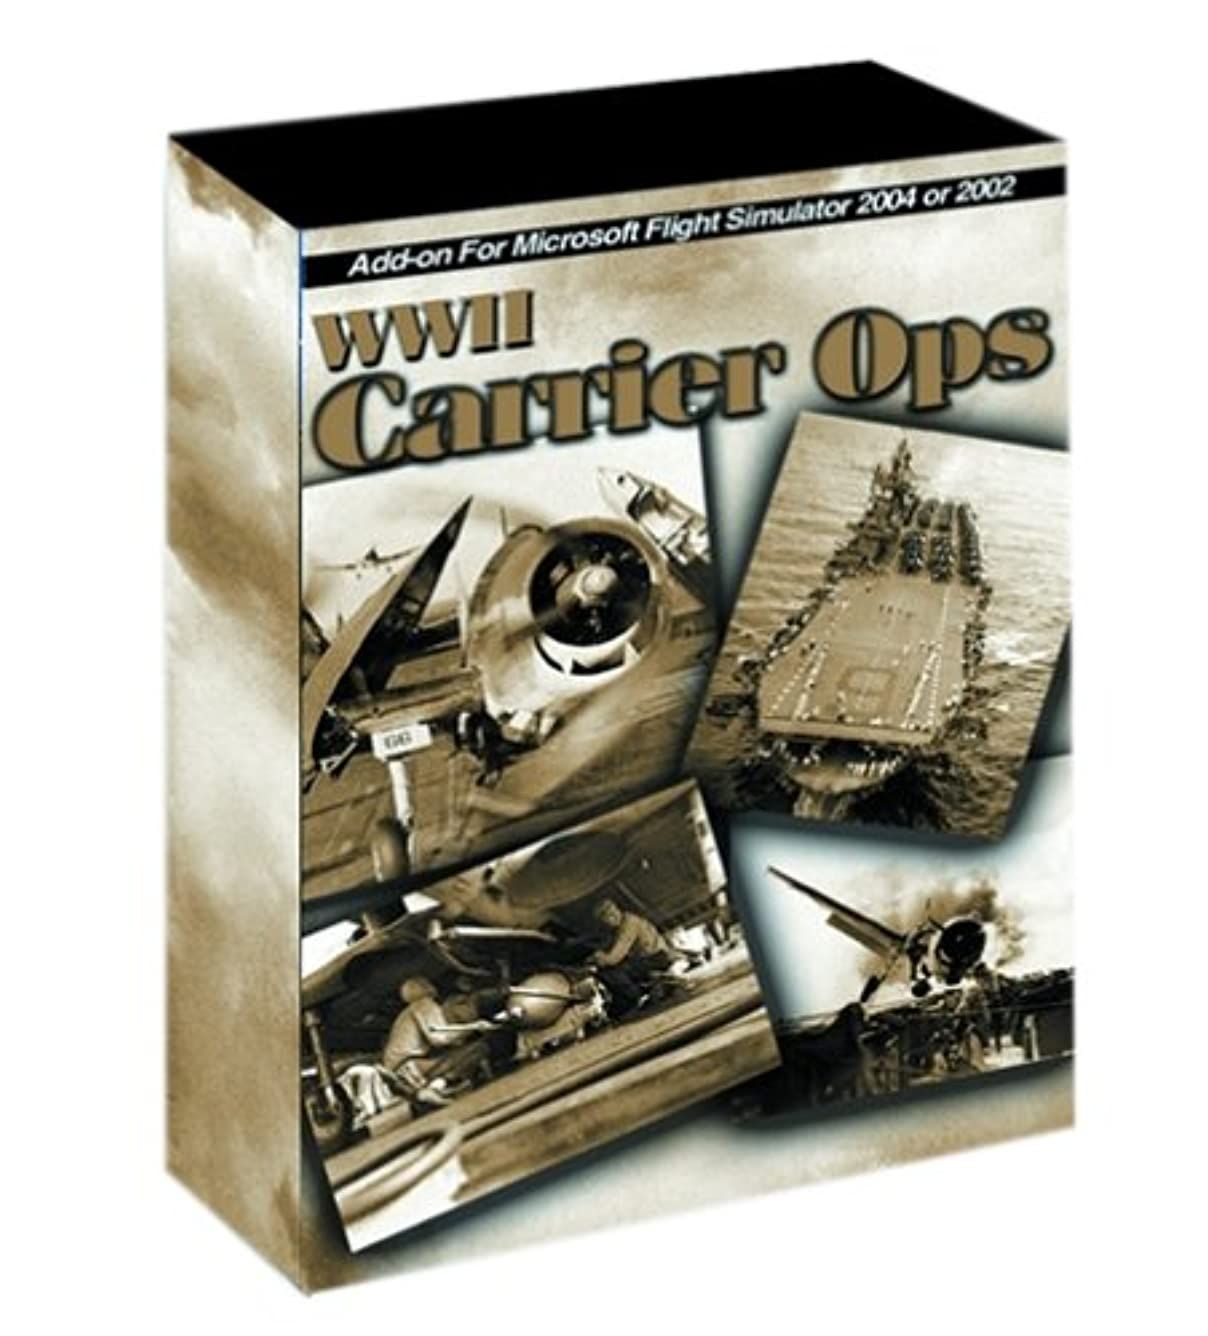 WWII Carrier Ops for Microsoft Flight Sim 2004 and 2002 (輸入版)